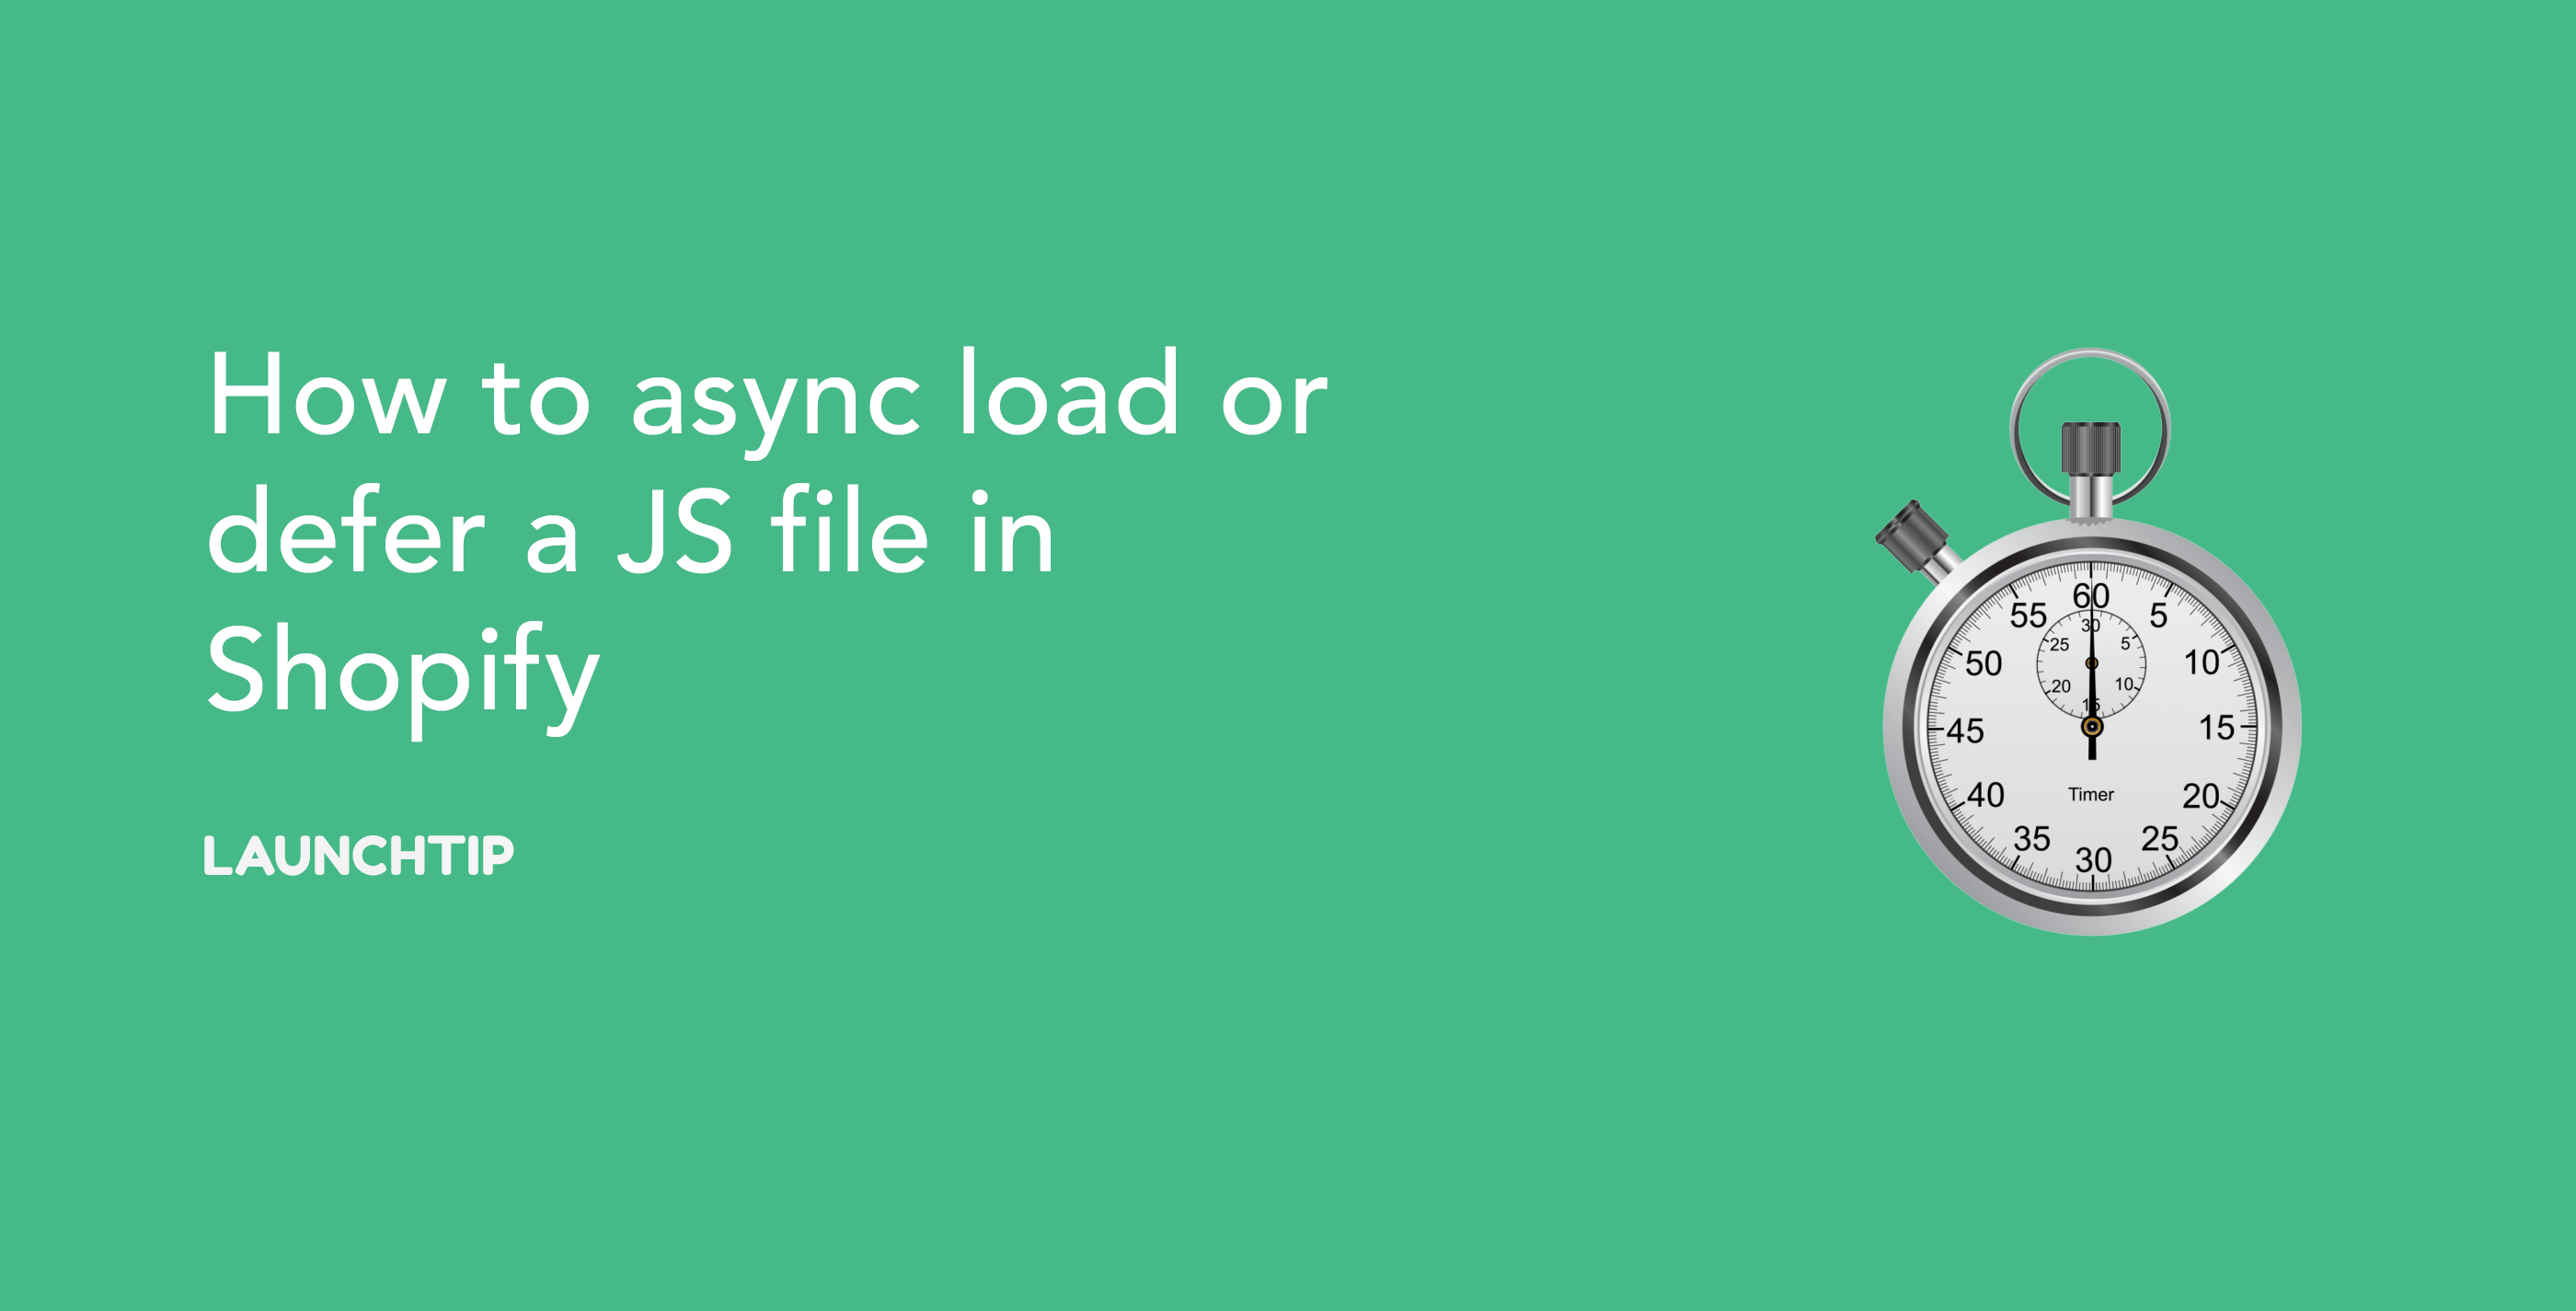 How to async load or defer a JS file in Shopify